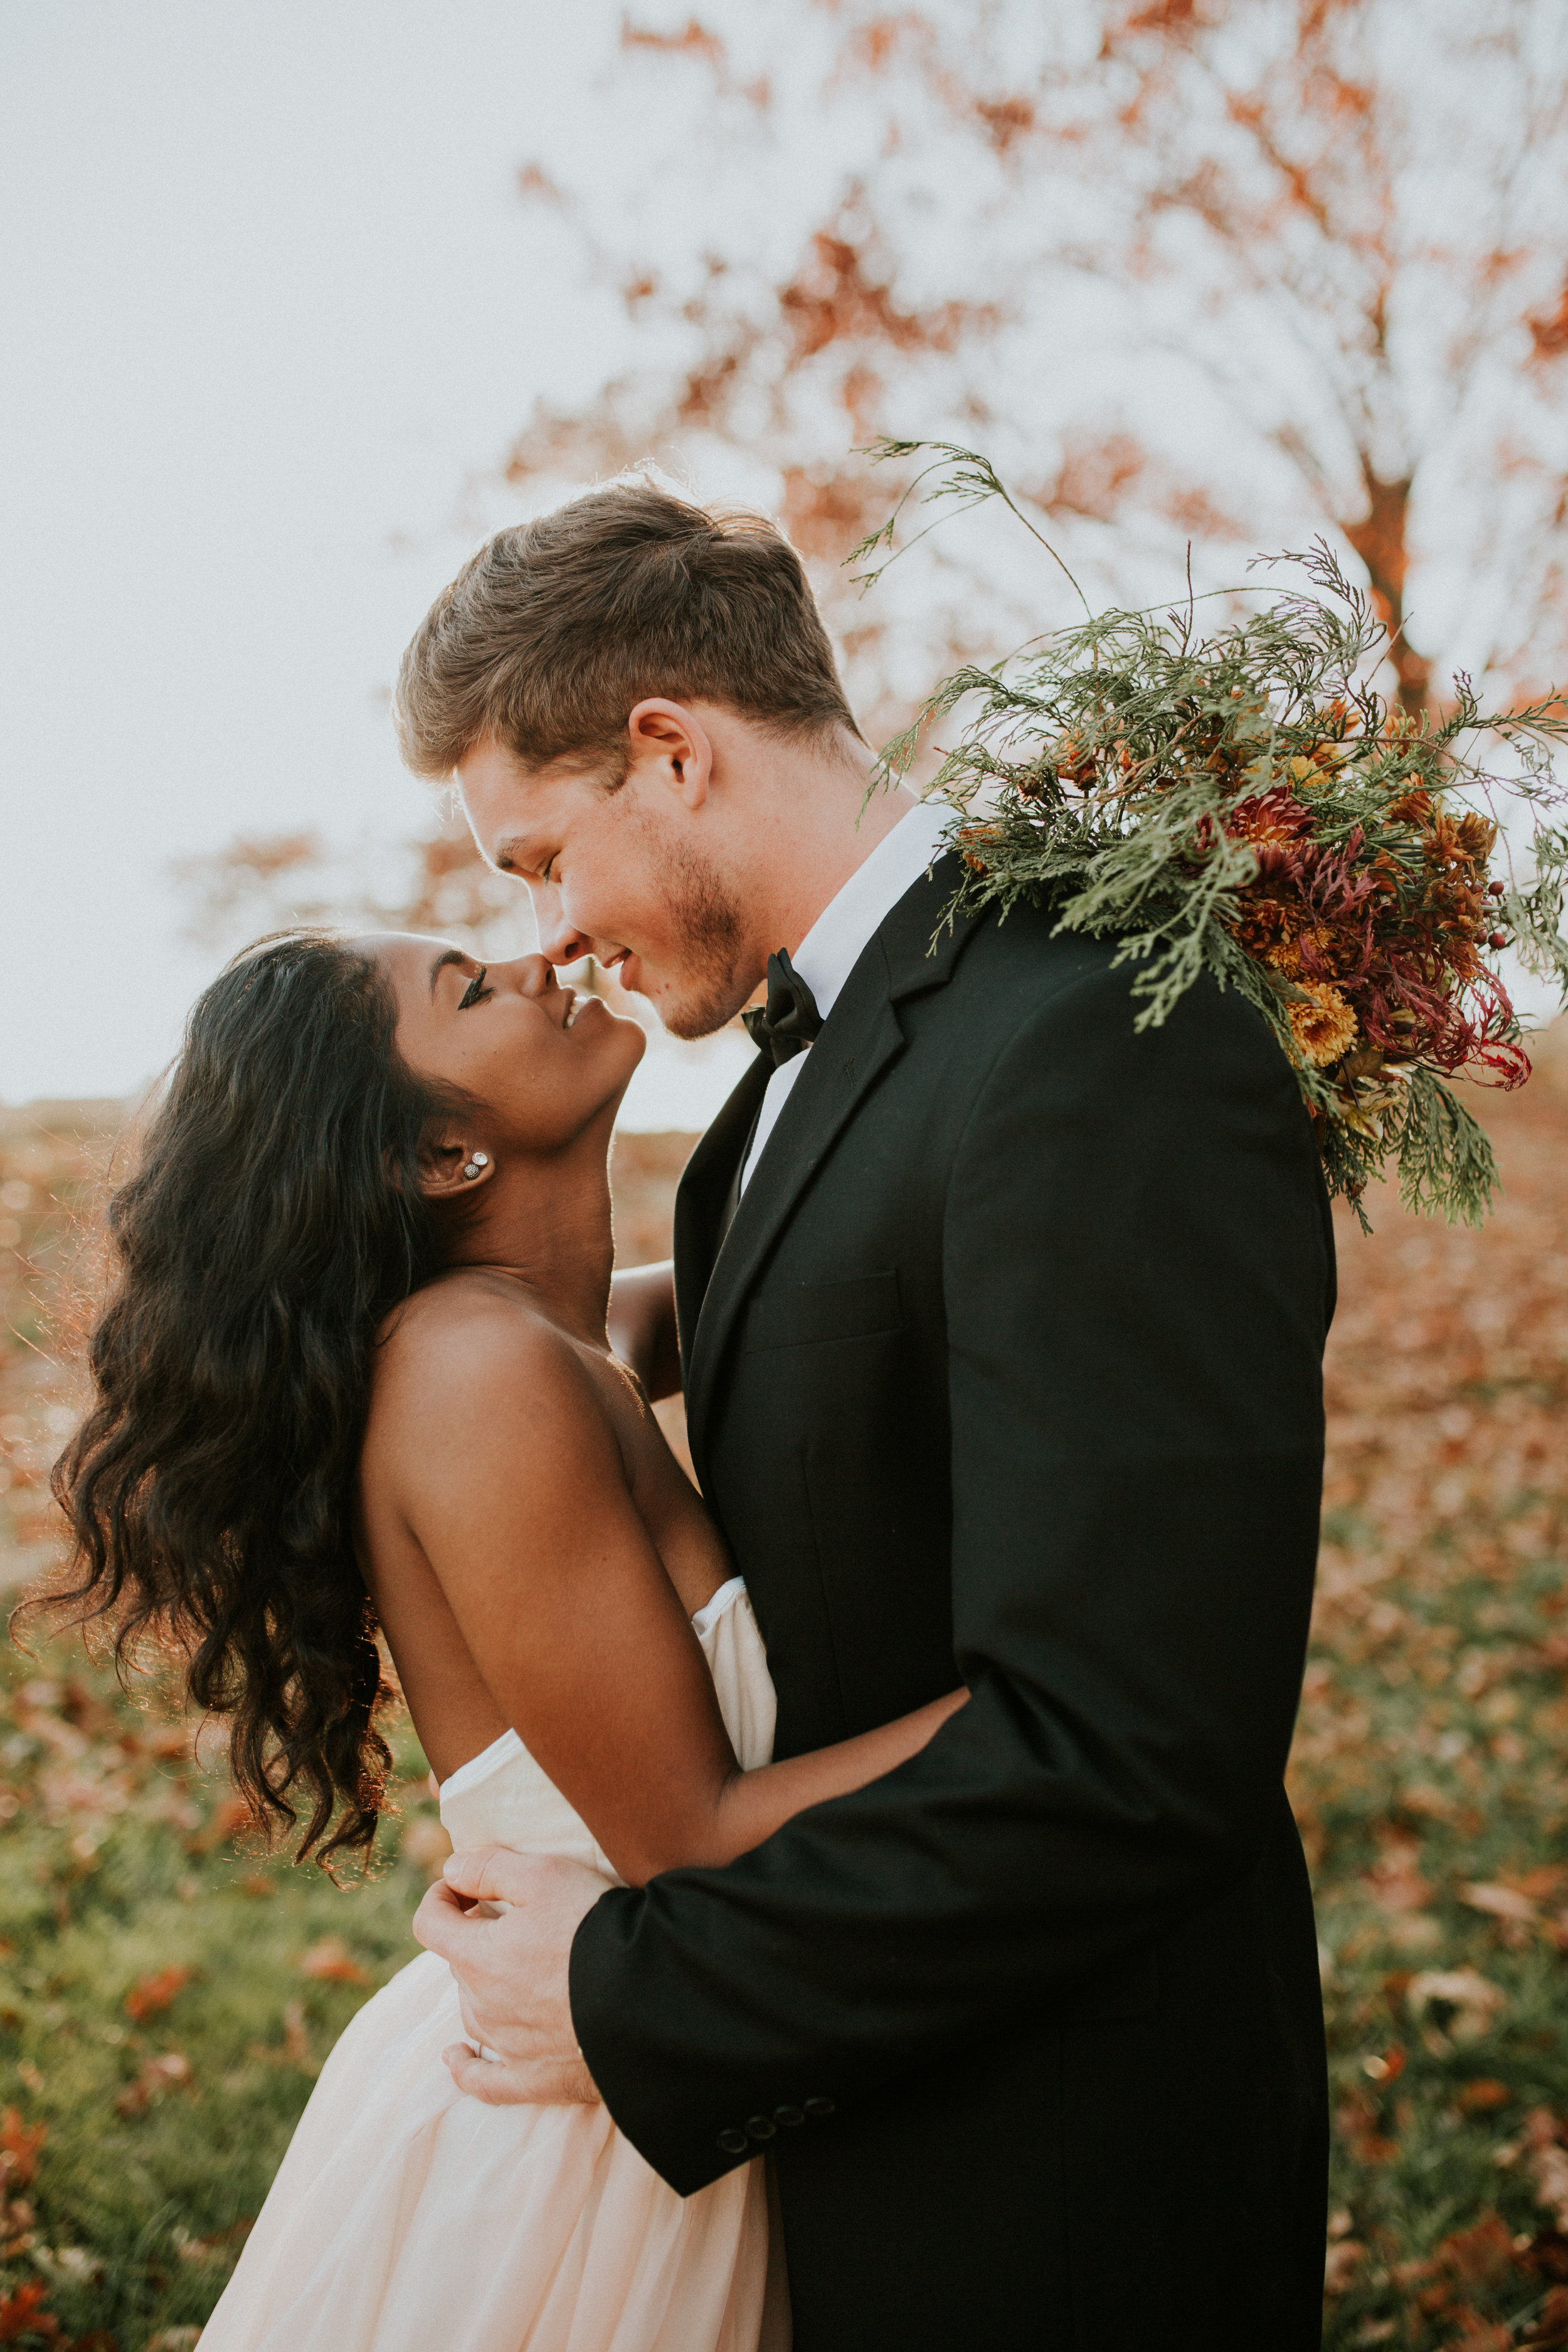 Baltimore elopement in the woods in autumn by BreeAnna Lasher